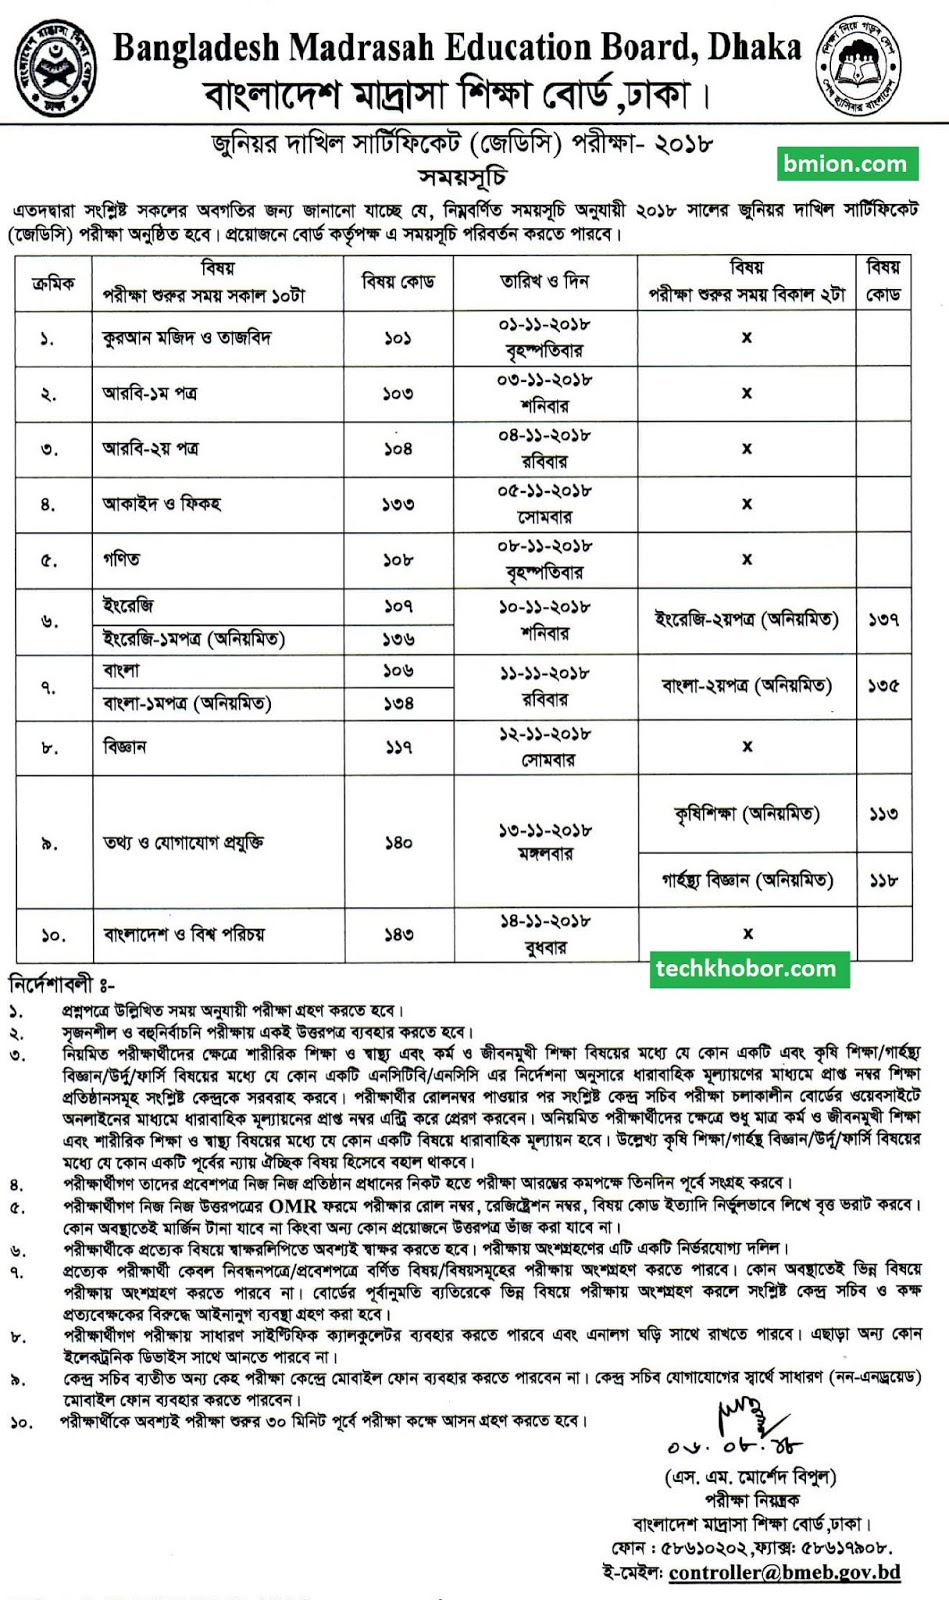 JDC-Exam-Routine-Starts-1-Nov-2018